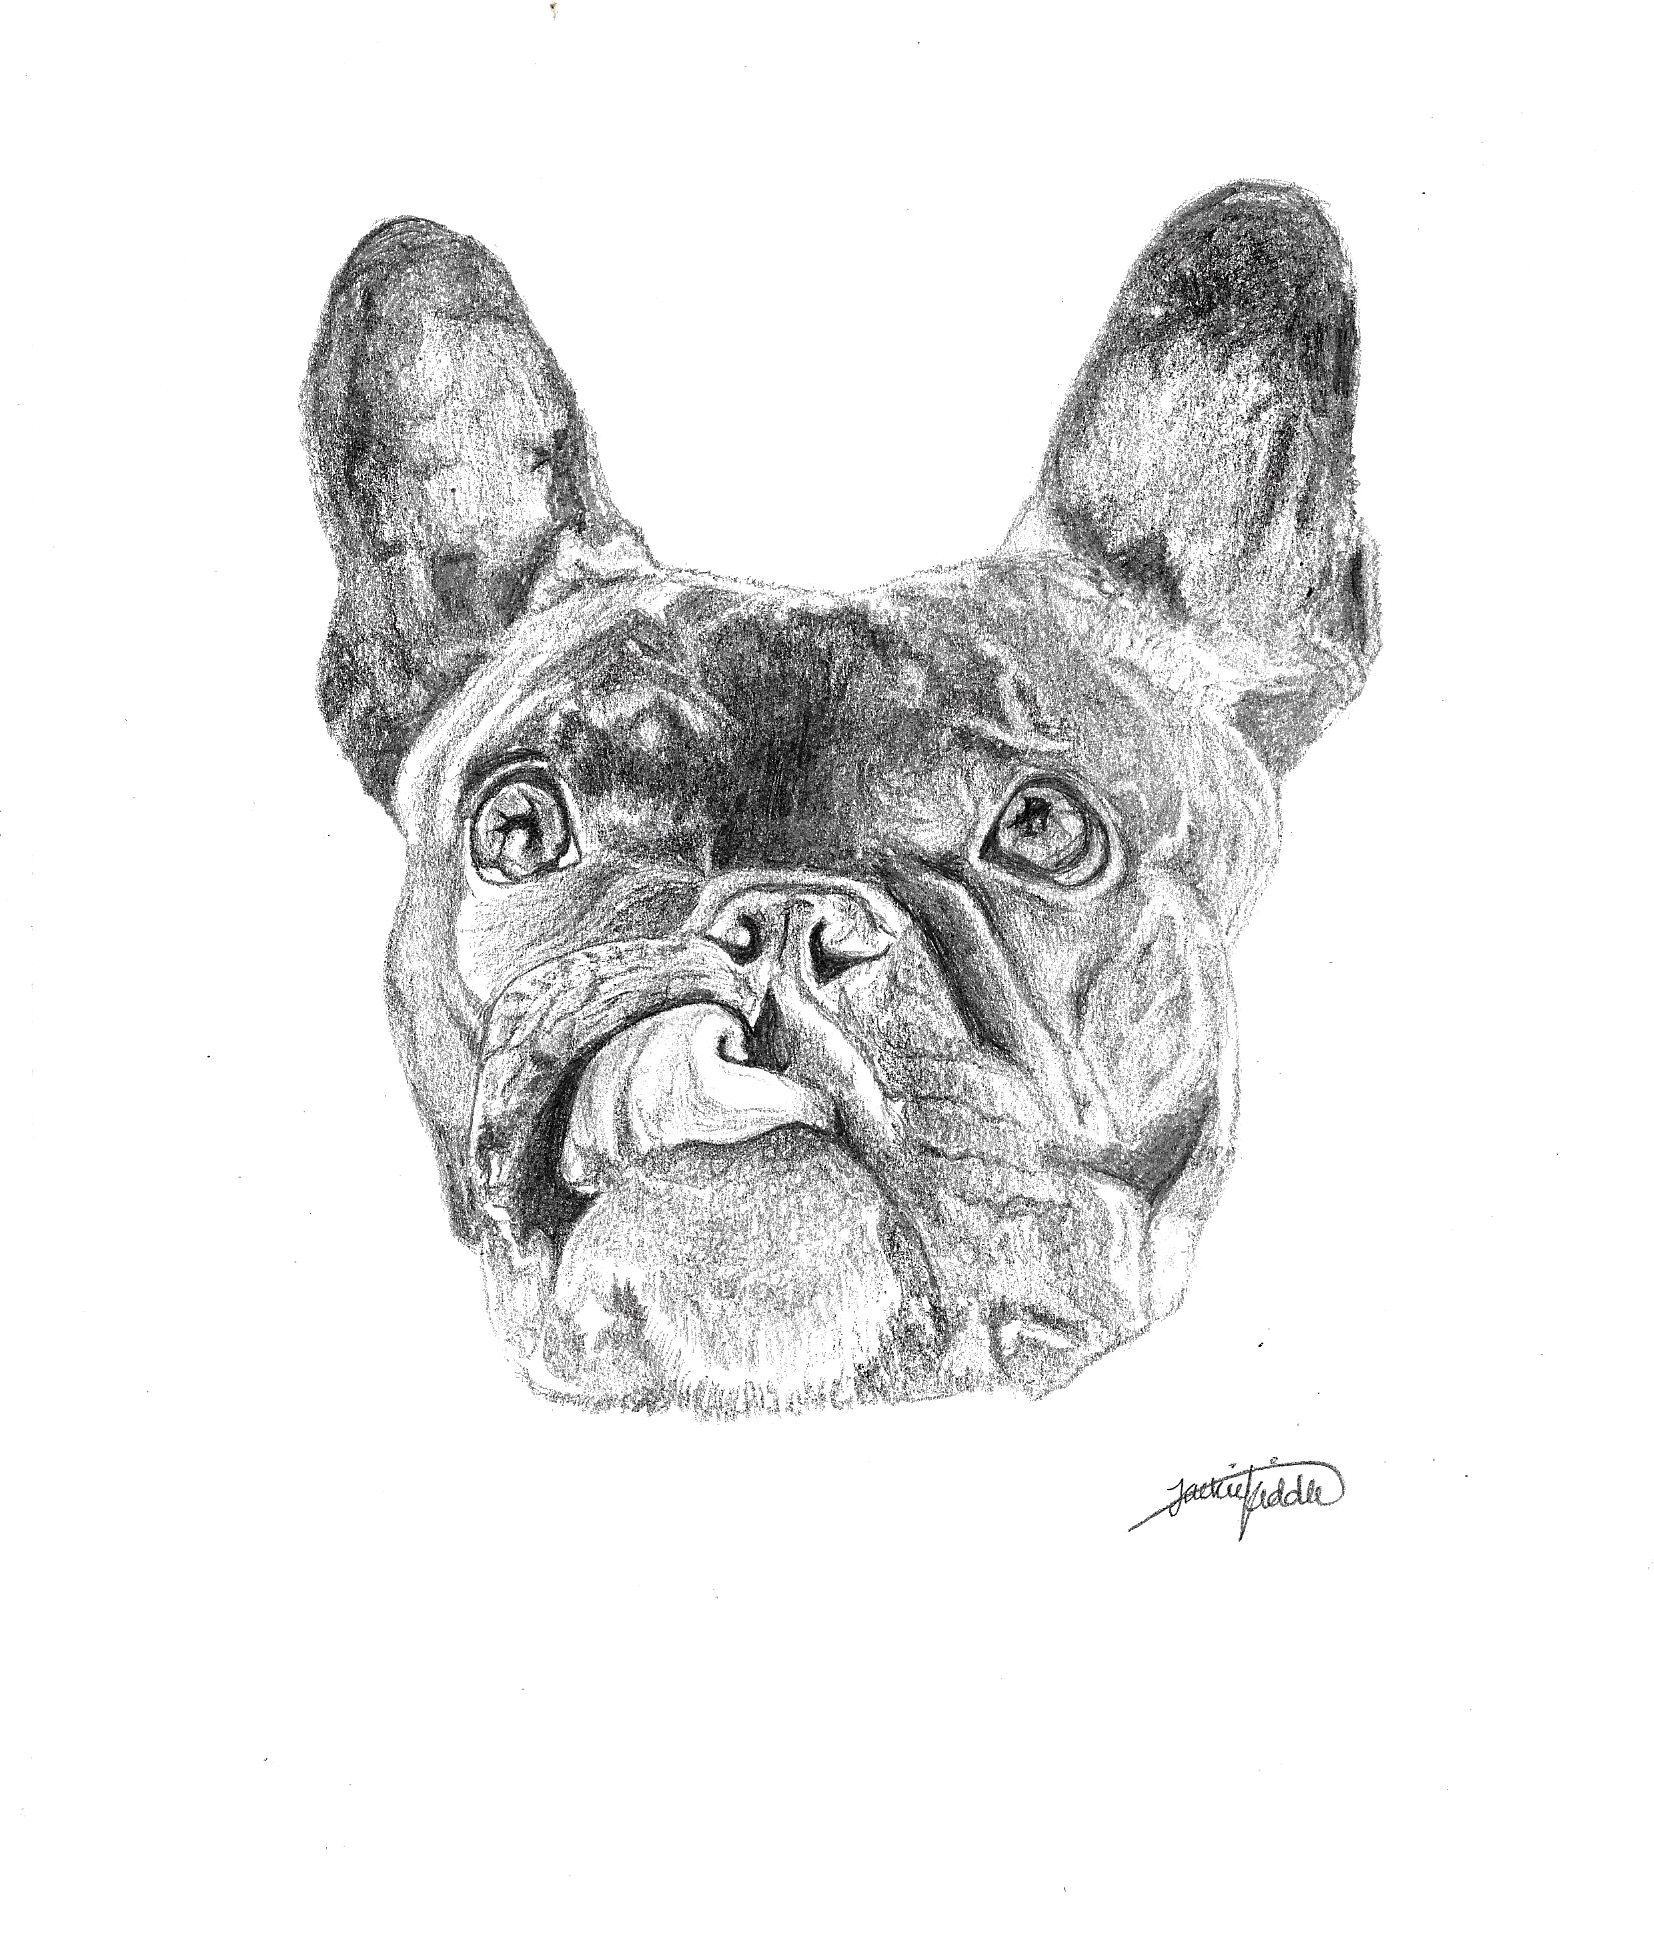 Pet drawings nz